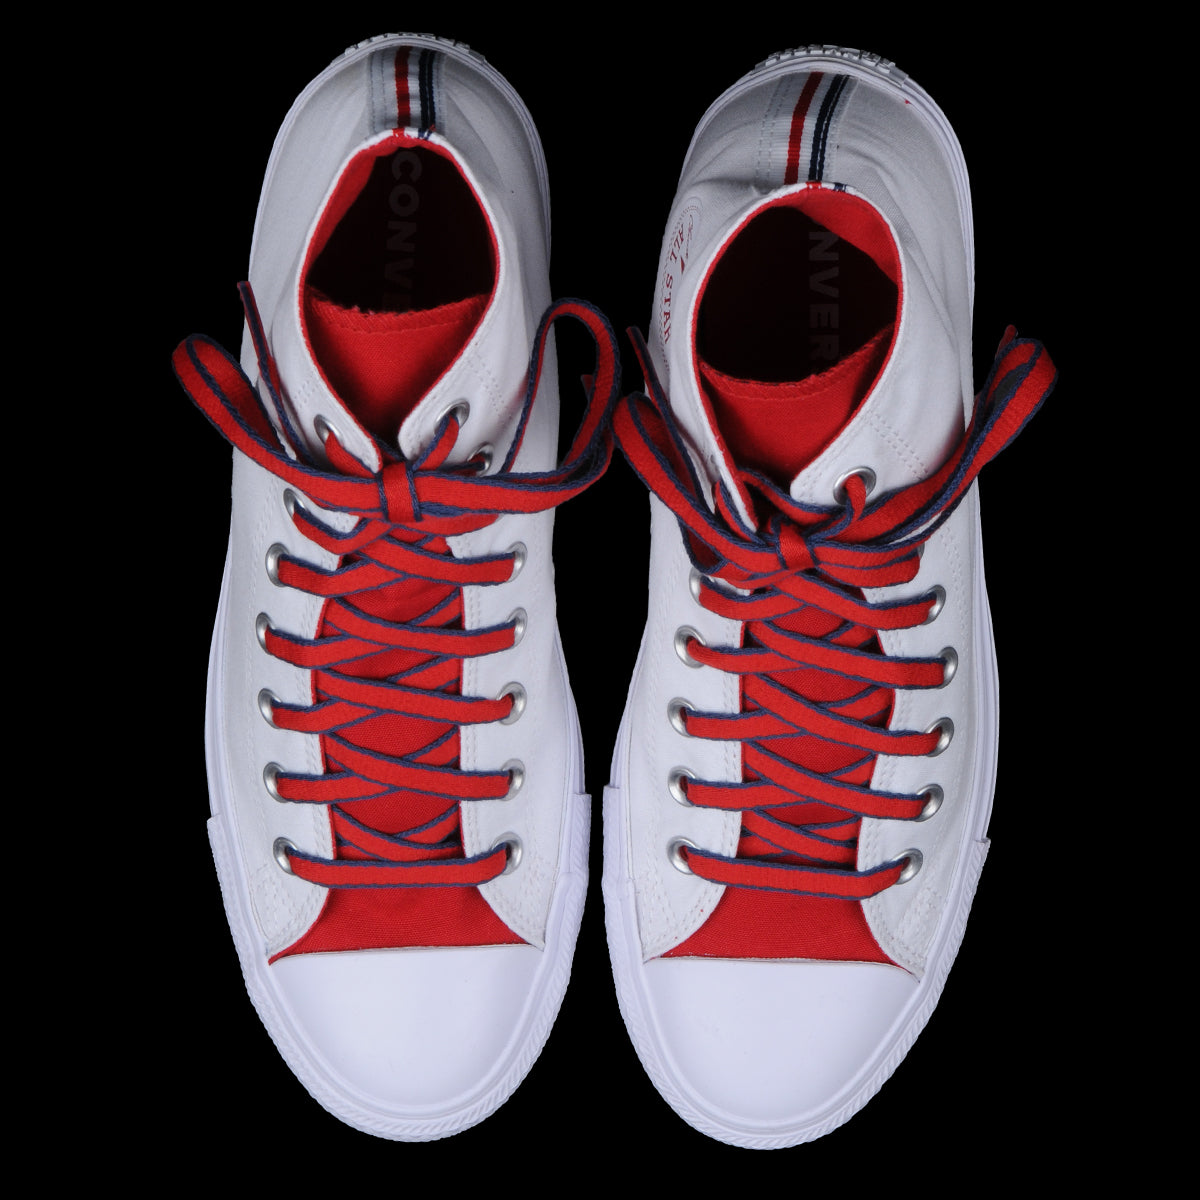 0be7e8a9c4bac3 Converse - Chuck Taylor All Star Hi in White Gym Red   Navy - UNIONMADE